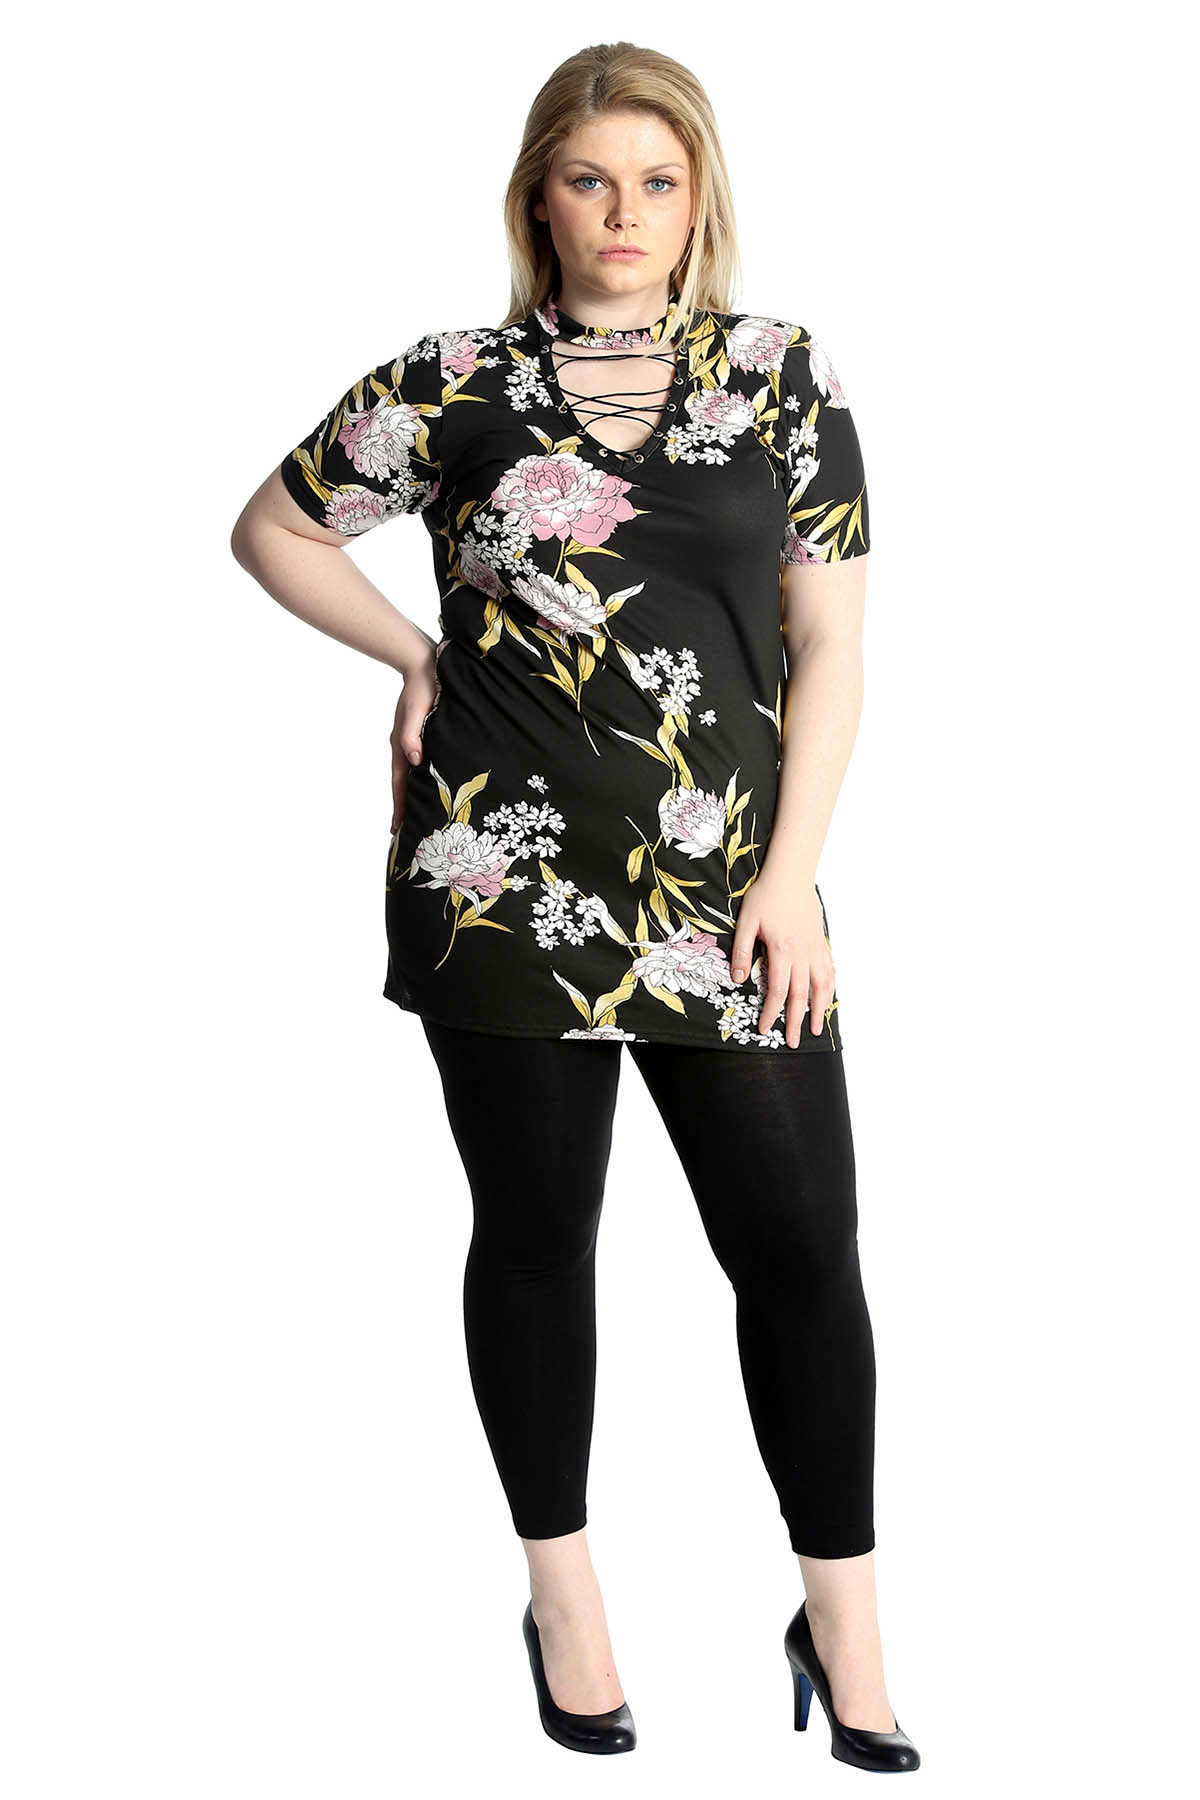 71a5549758a New Womens Floral Plus Size Top Ladies T-Shirt Eyelet Drawstring V ...